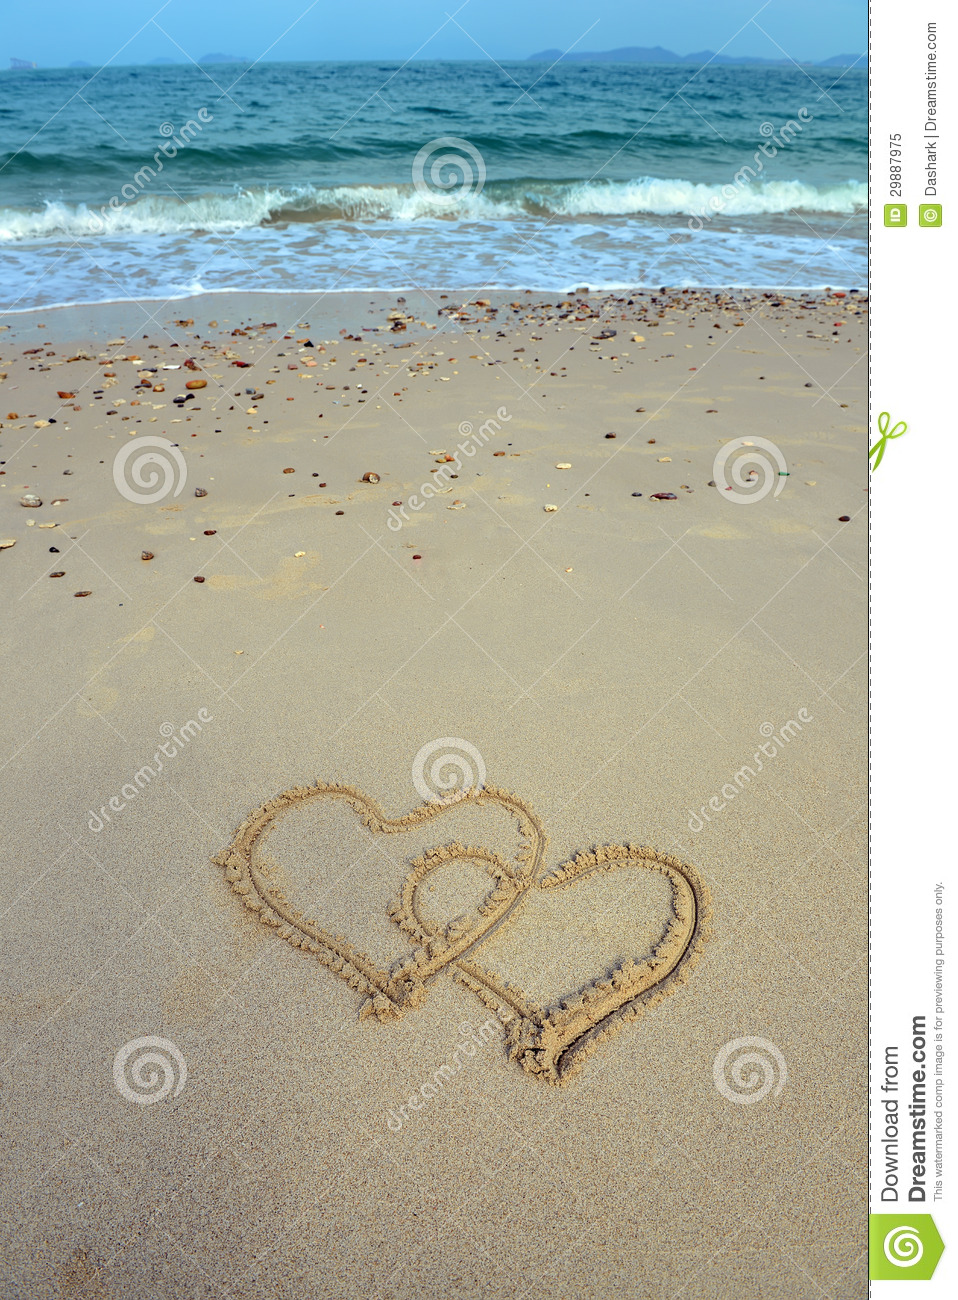 Two Hearts Drawn In Sand Royalty Free Stock Photo - Image ...